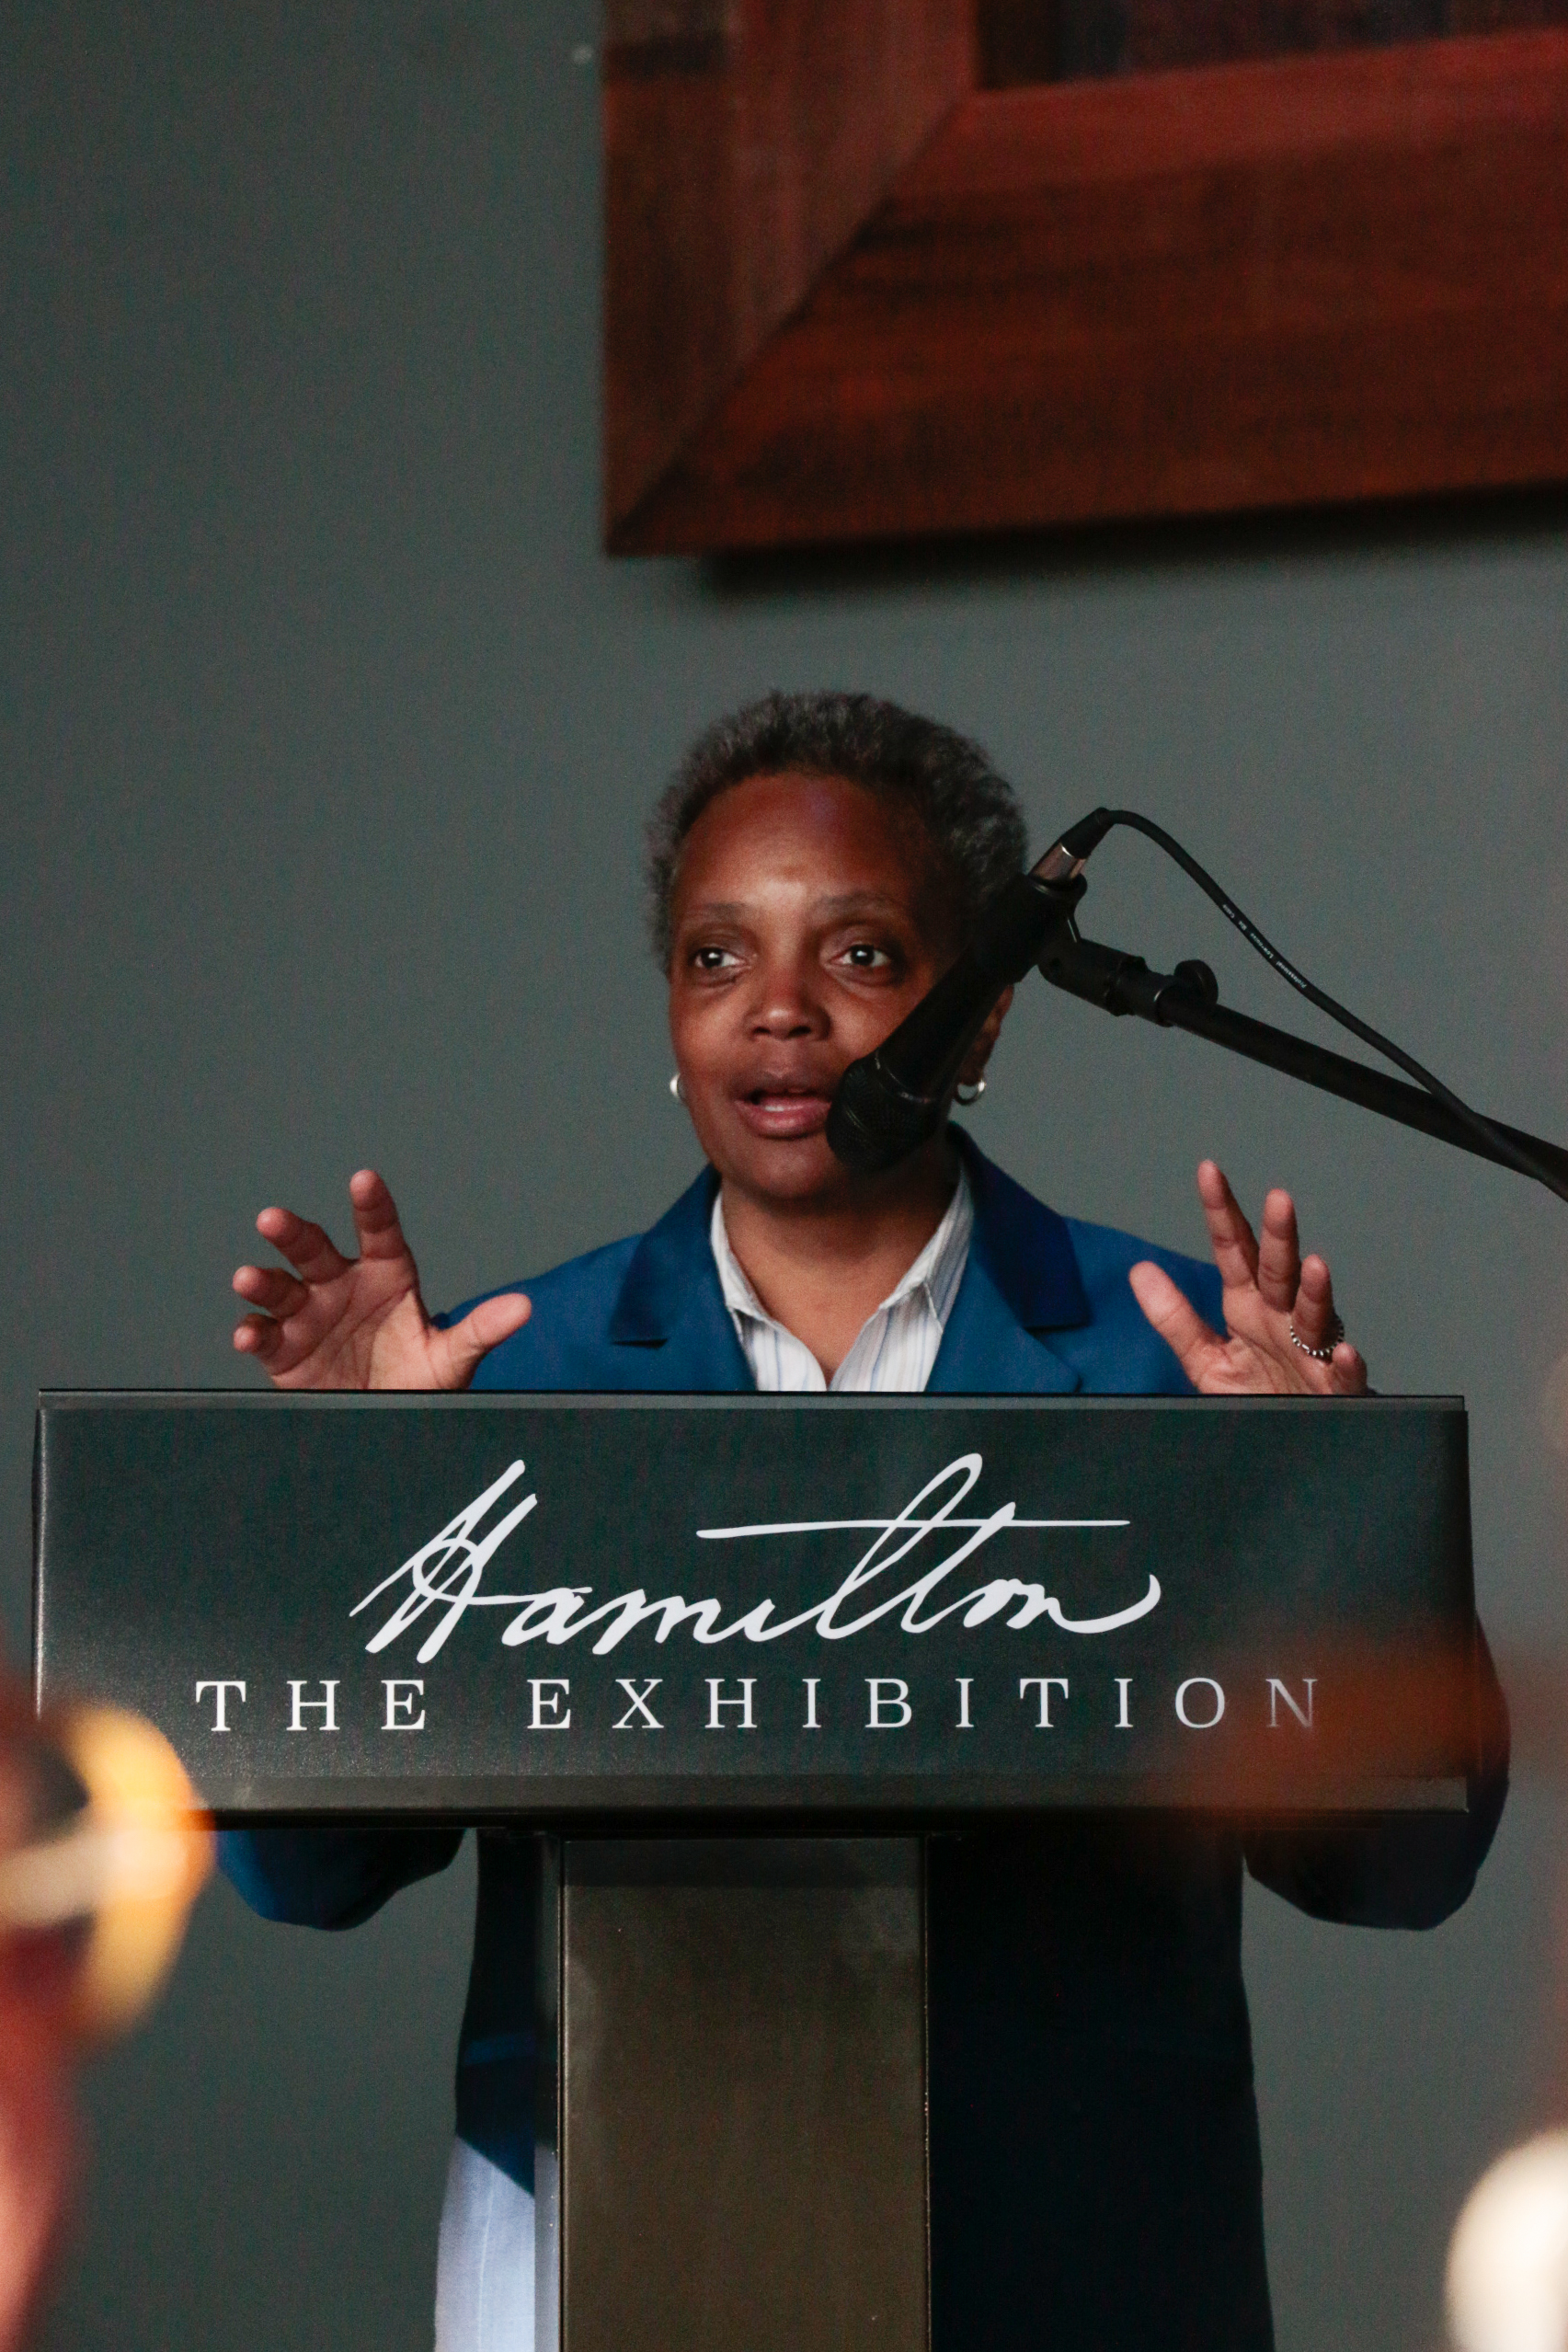 Mayoral Elect Lori Lightfoot at the Hamilton Exhibition Ribbon Cutting, April 26th, 2019. Photo by Mary Crylen.